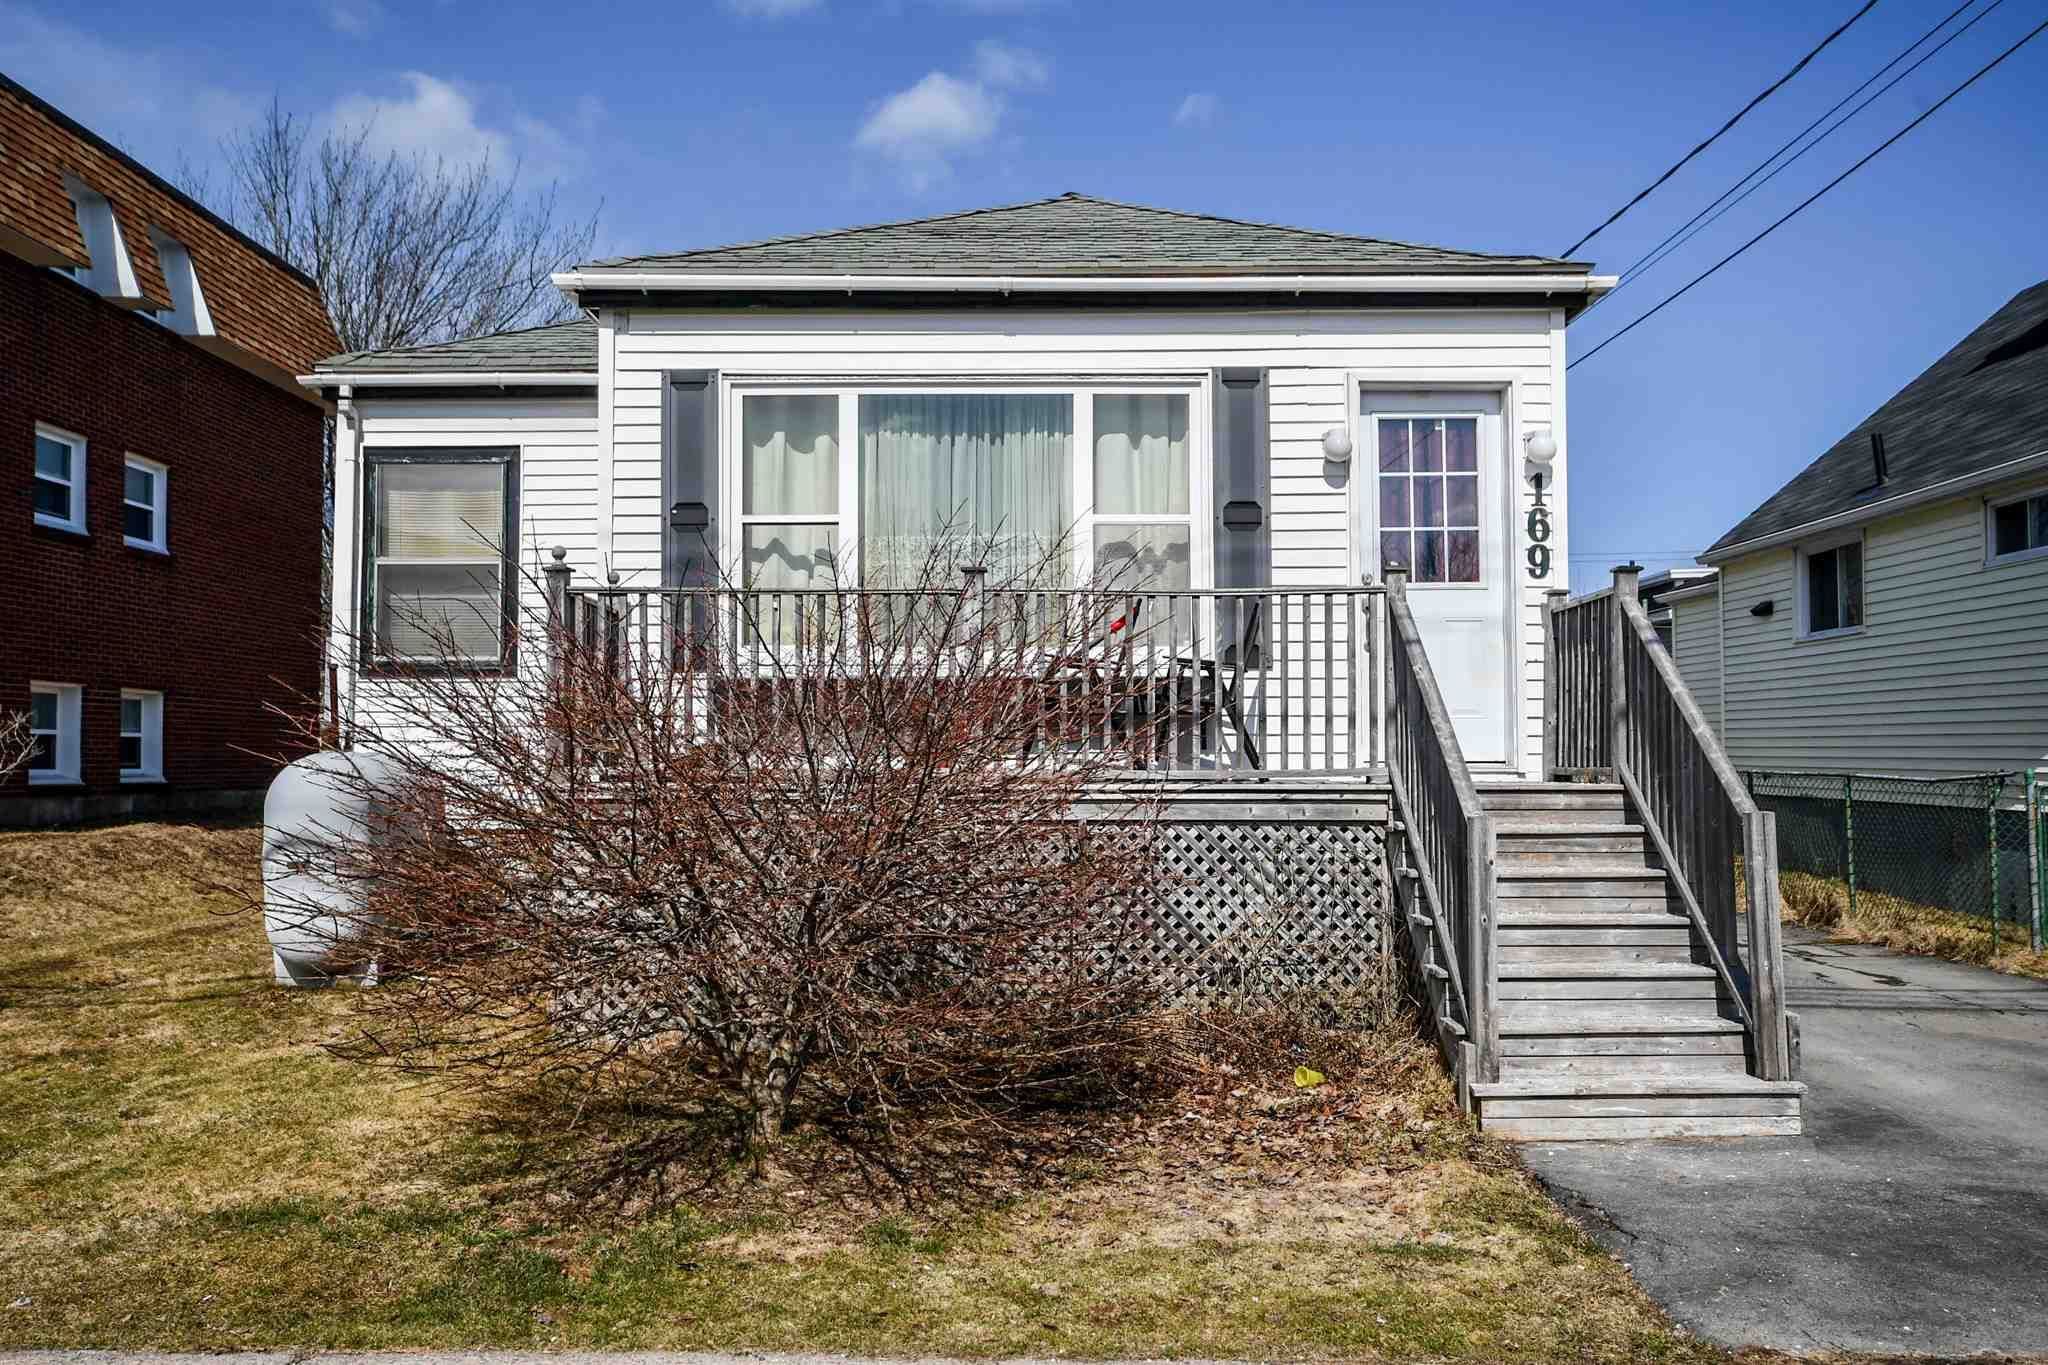 Main Photo: 169 Main Avenue in Fairview: 6-Fairview Residential for sale (Halifax-Dartmouth)  : MLS®# 202105999